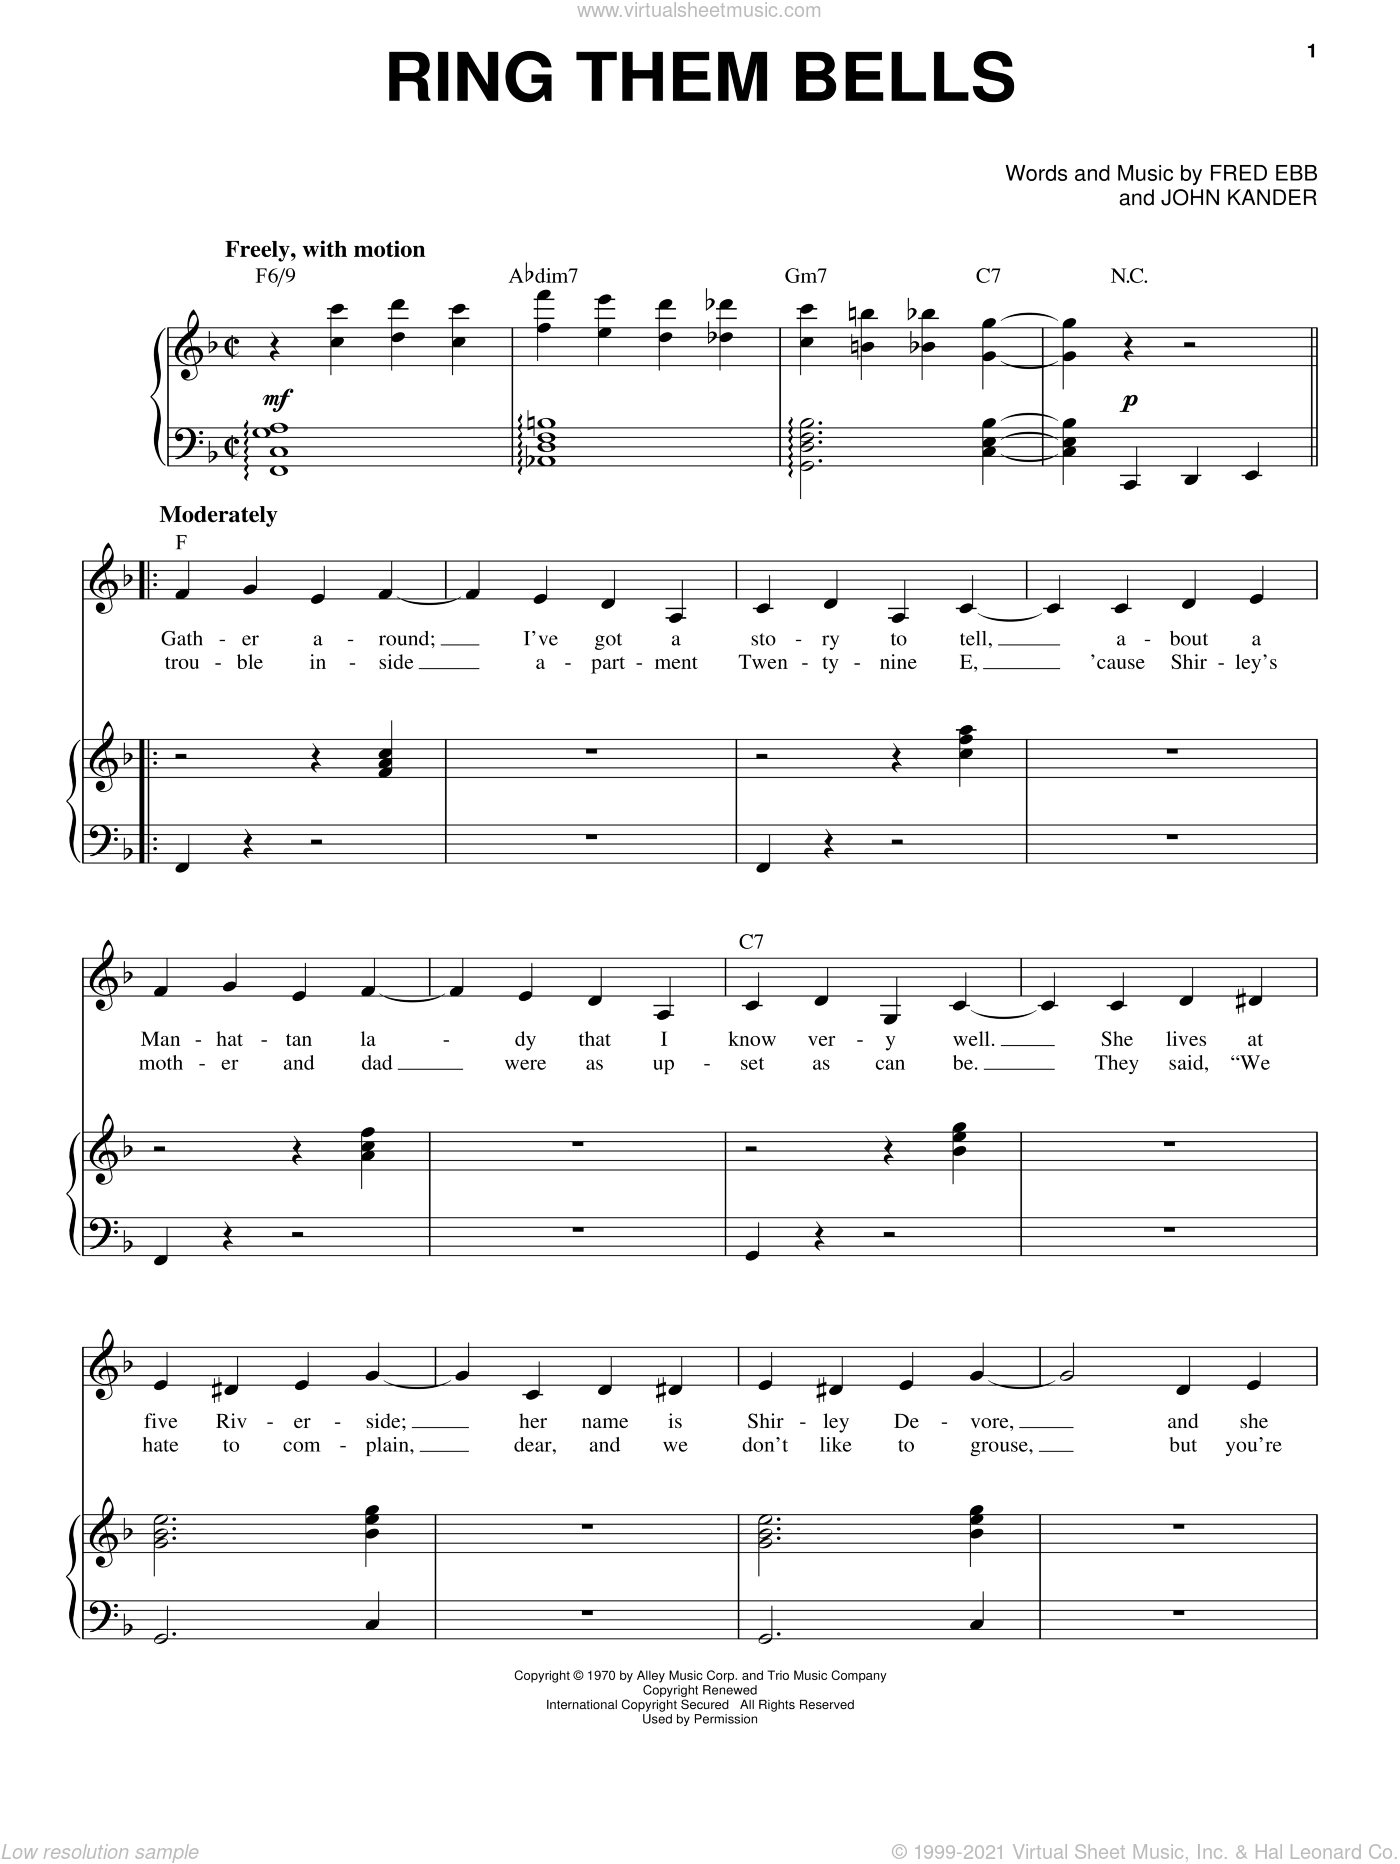 Ring Them Bells sheet music for voice and piano by Liza Minnelli, Kander & Ebb, Fred Ebb and John Kander, intermediate skill level